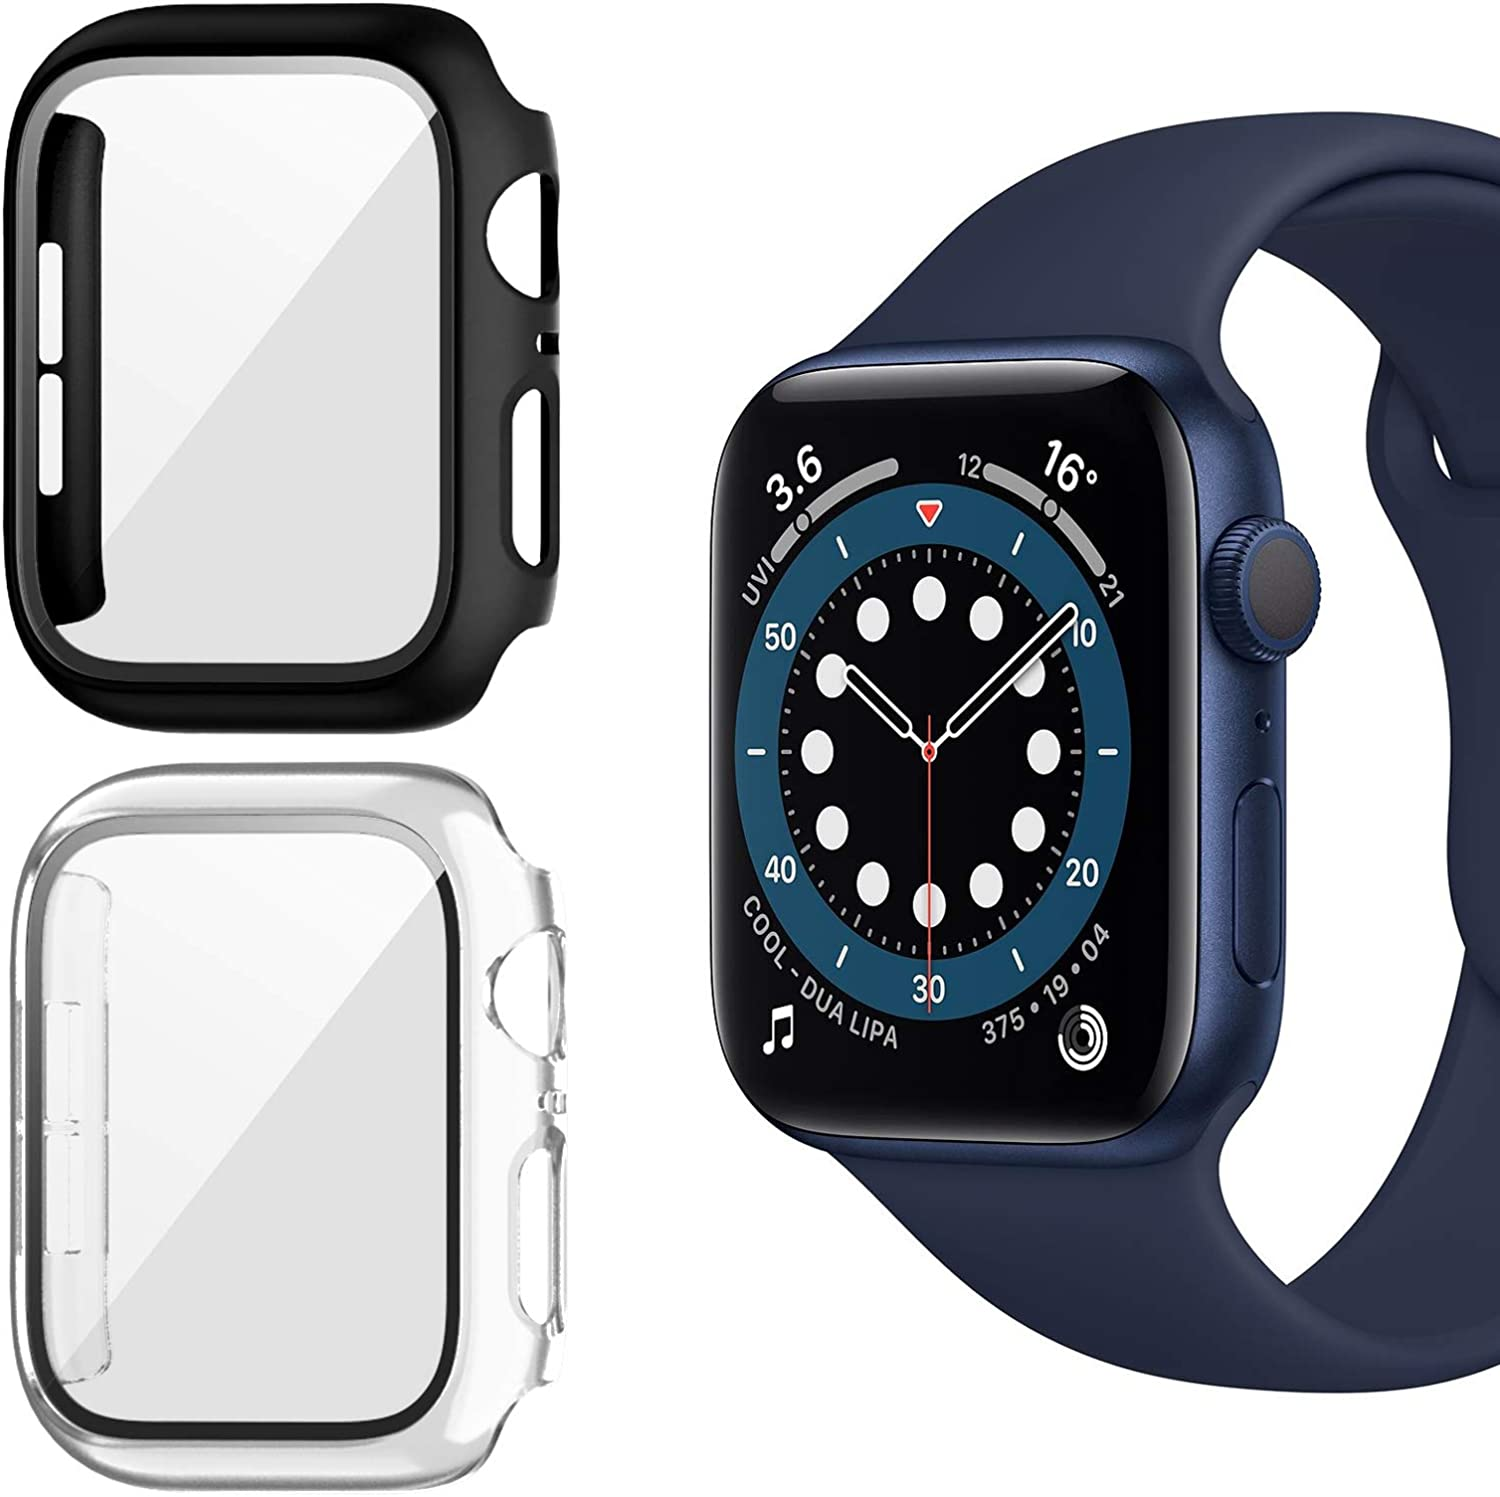 Landhoo 2 Pack case for Apple Watch Series SE/6/5/4 44mm Screen Protector with Tempered Glass, Hard PC HD Full Cover Protective iwatch(Black+Clear).